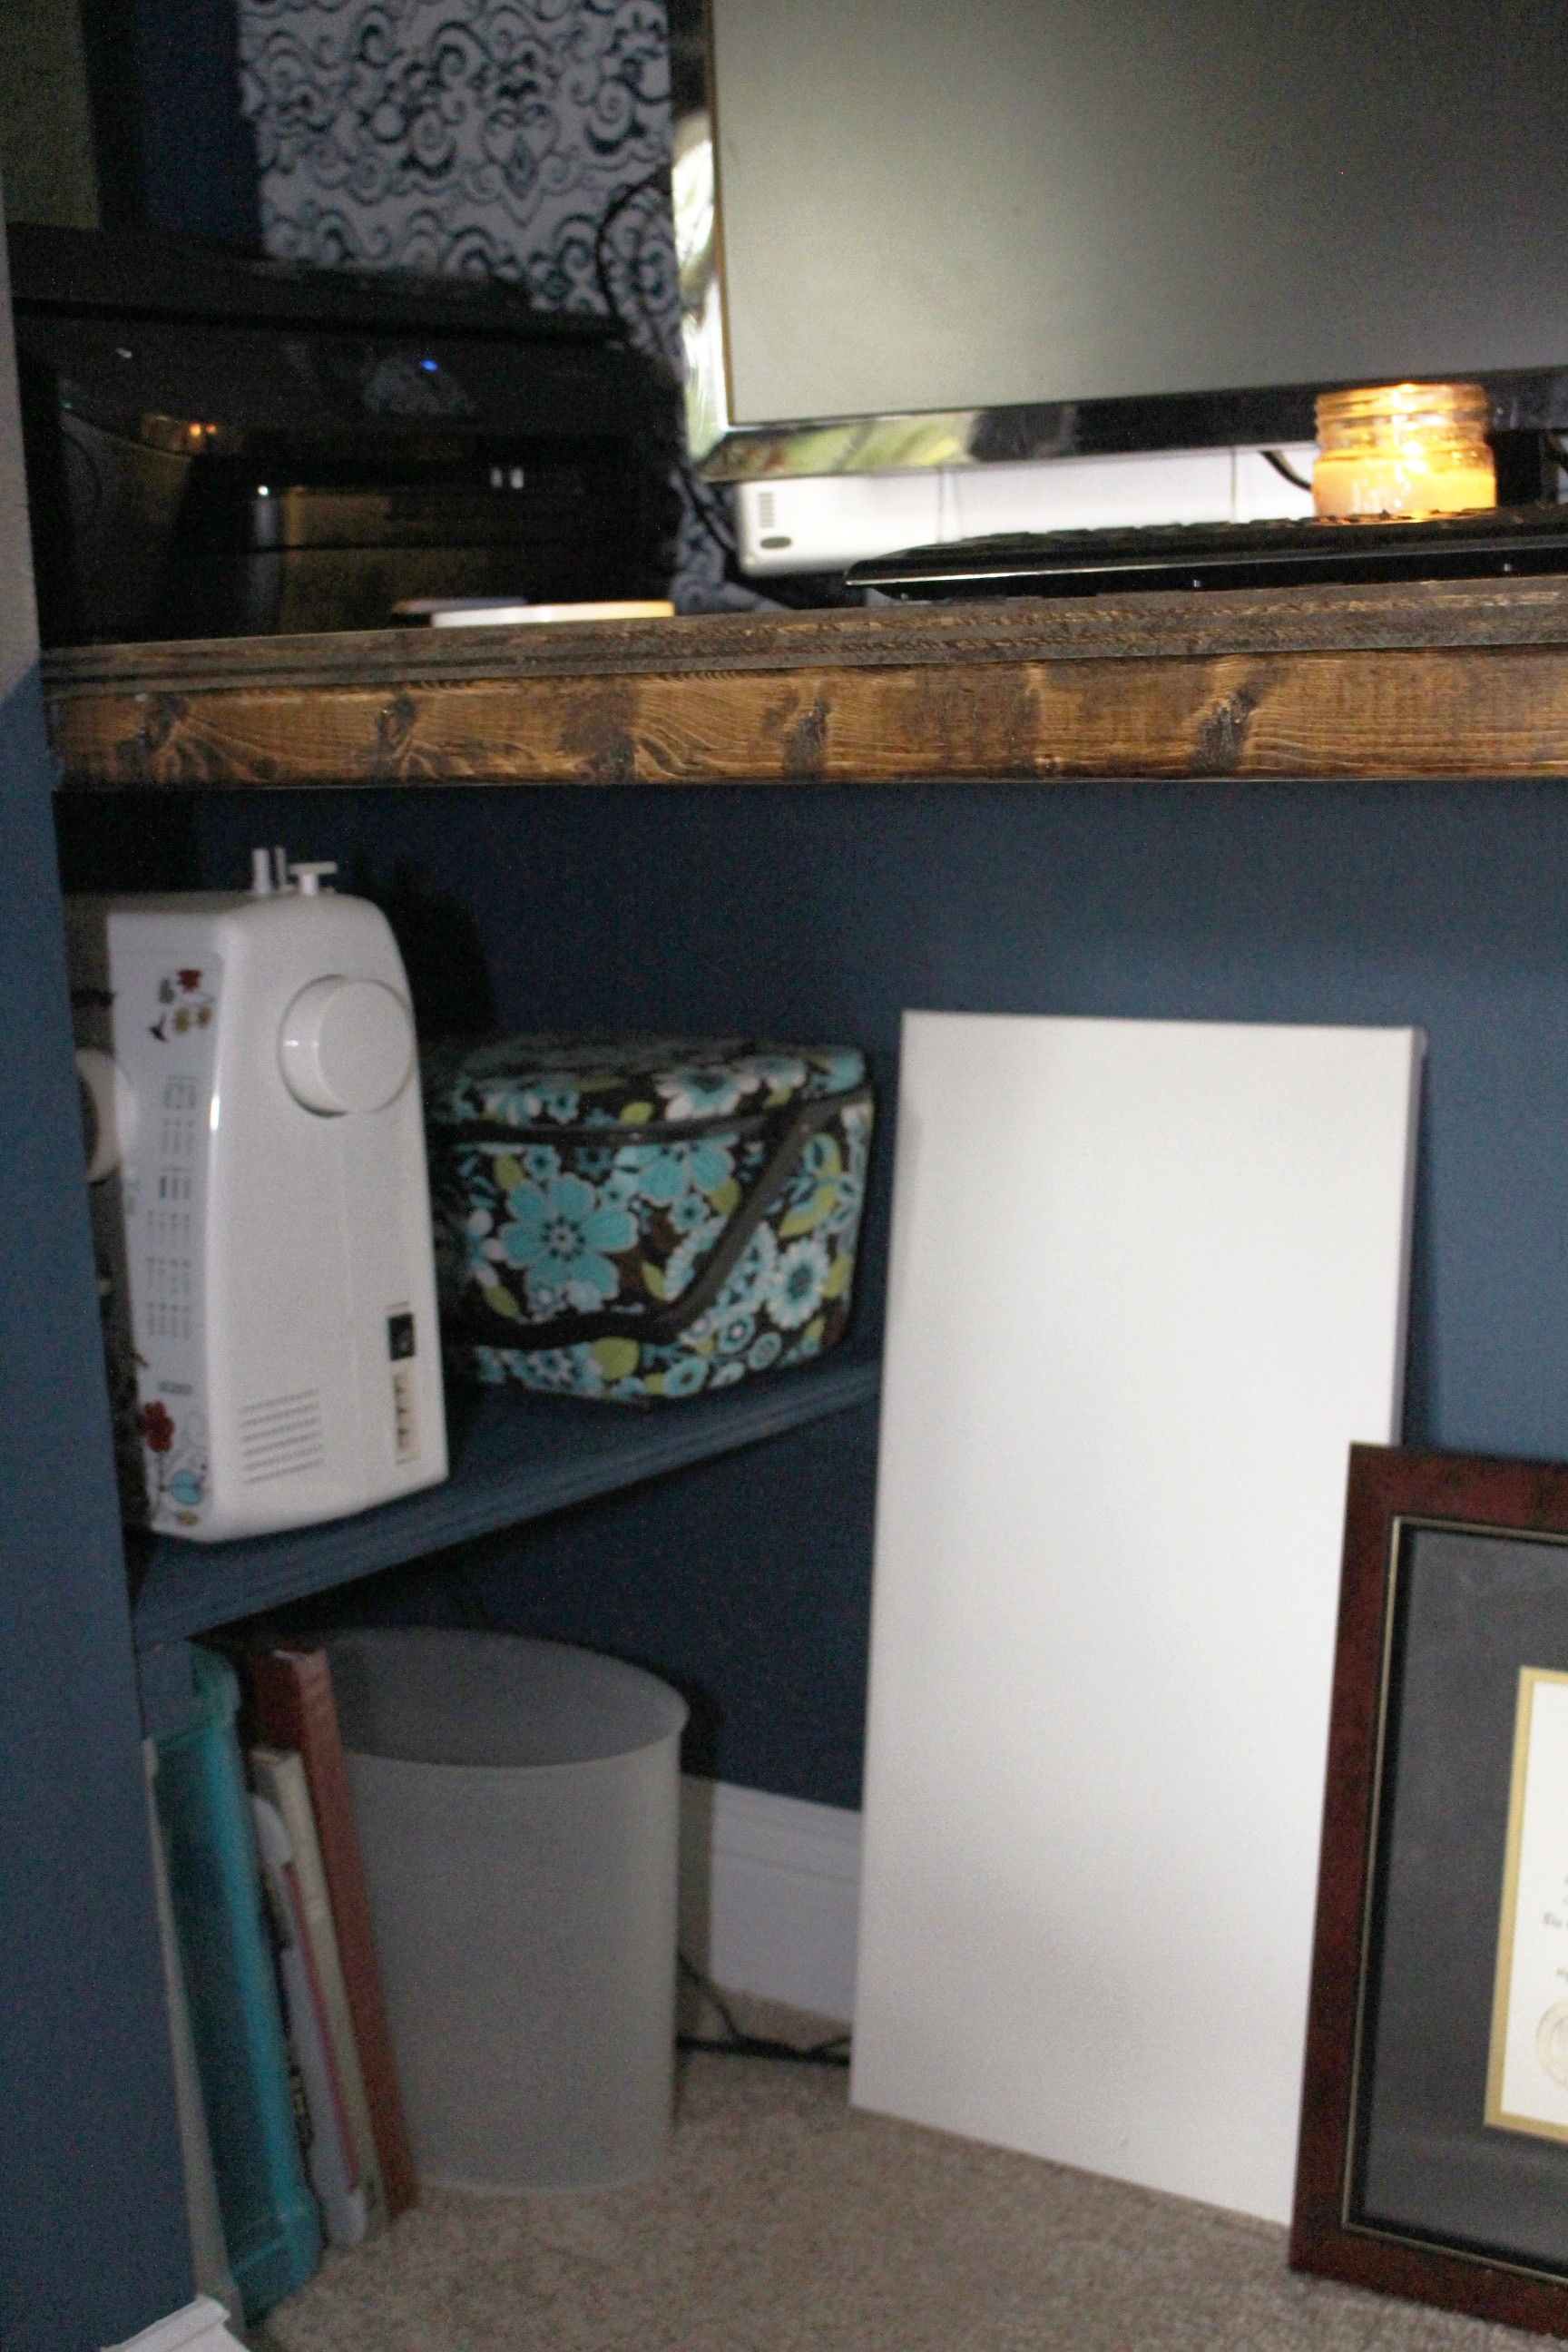 Disguising shelf by painting it the same color as wall